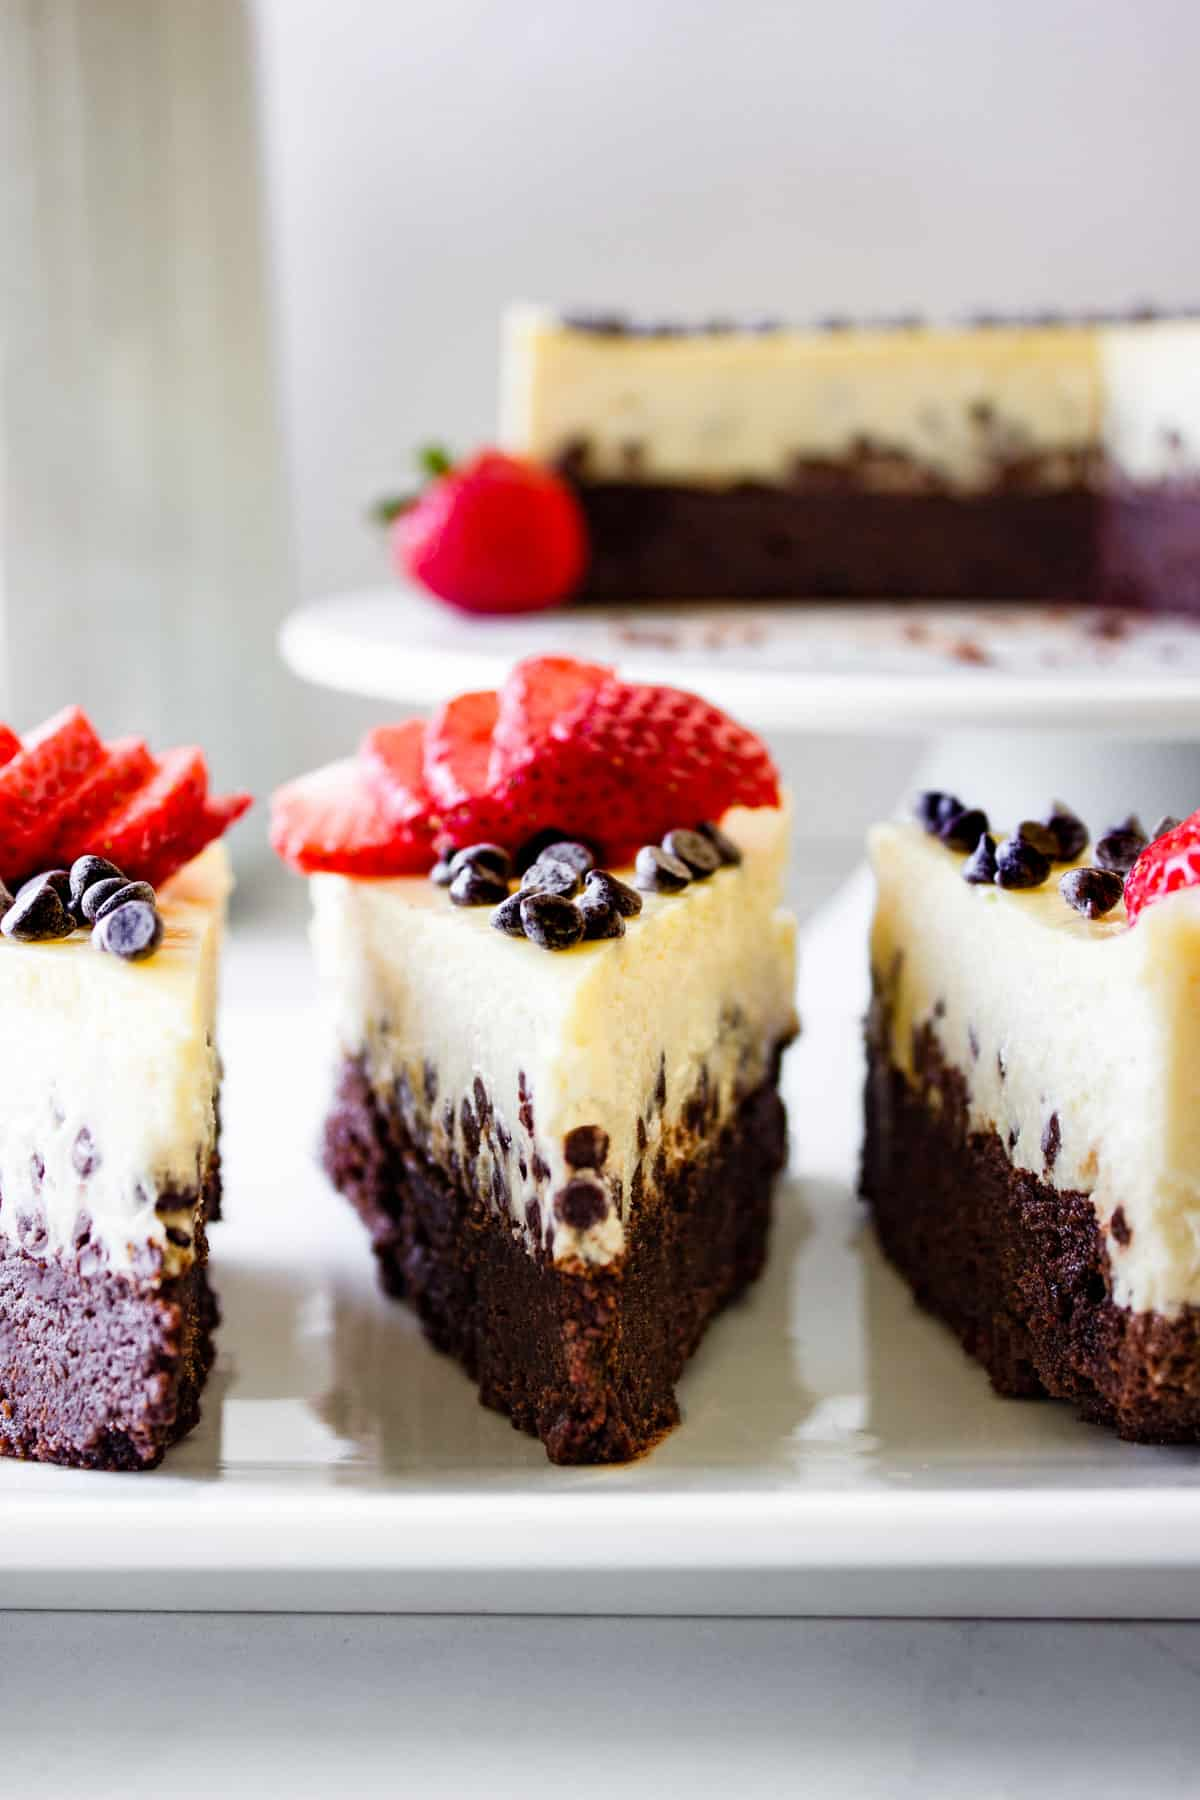 Two distinct layers of brownie and cheesecake in this chocolate chip brownie cheesecake topped with sliced strawberries.